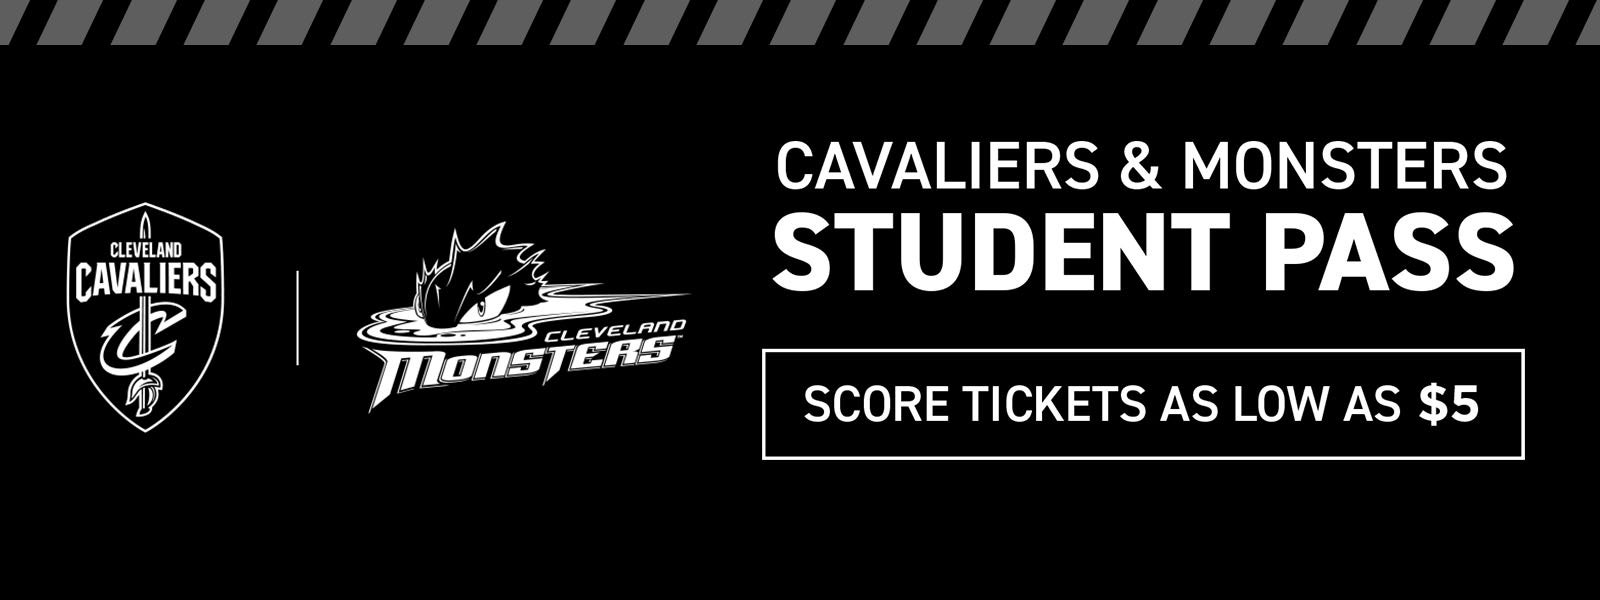 Cavaliers & Monsters Student Pass